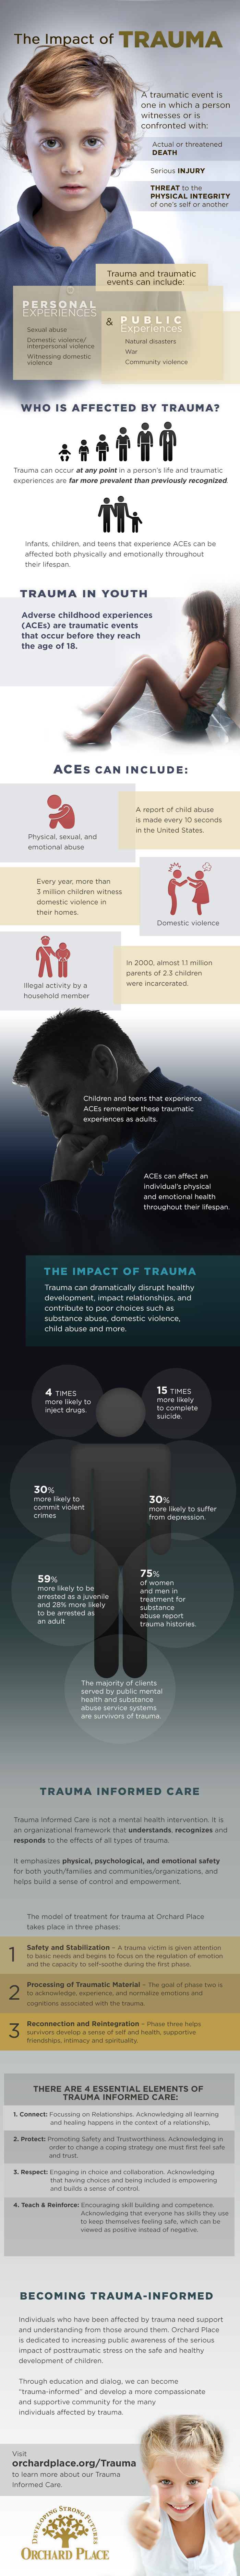 orchard place trauma informed care infographic